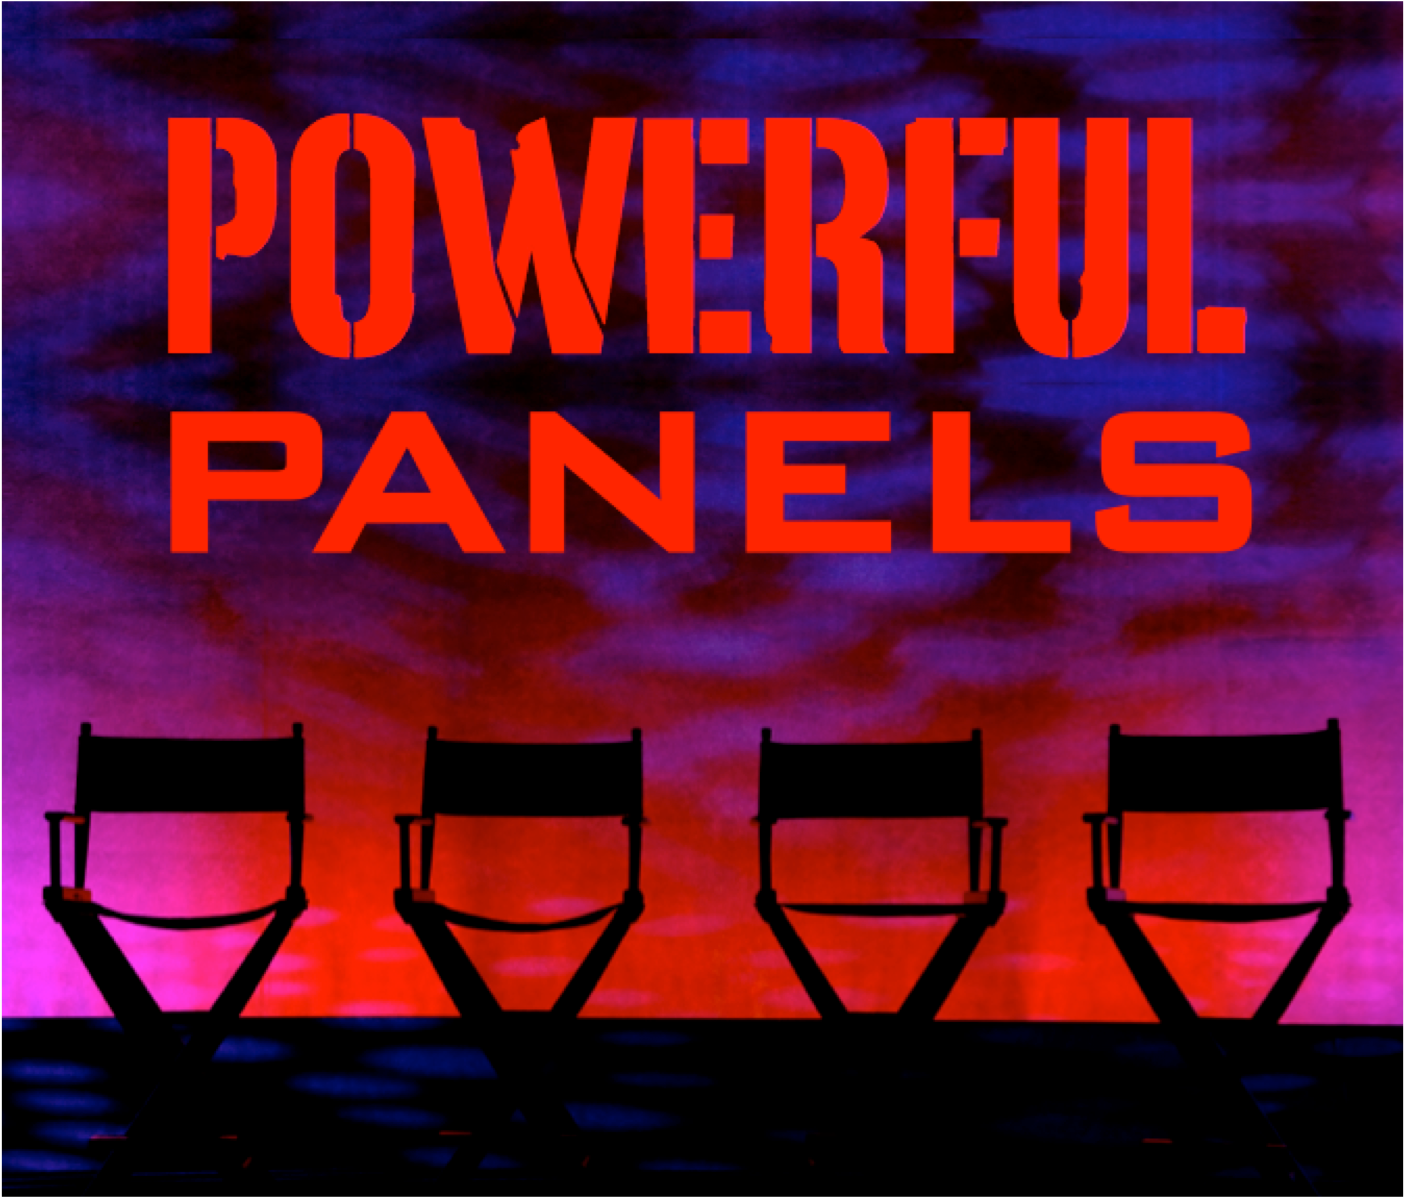 PowerfulPanels